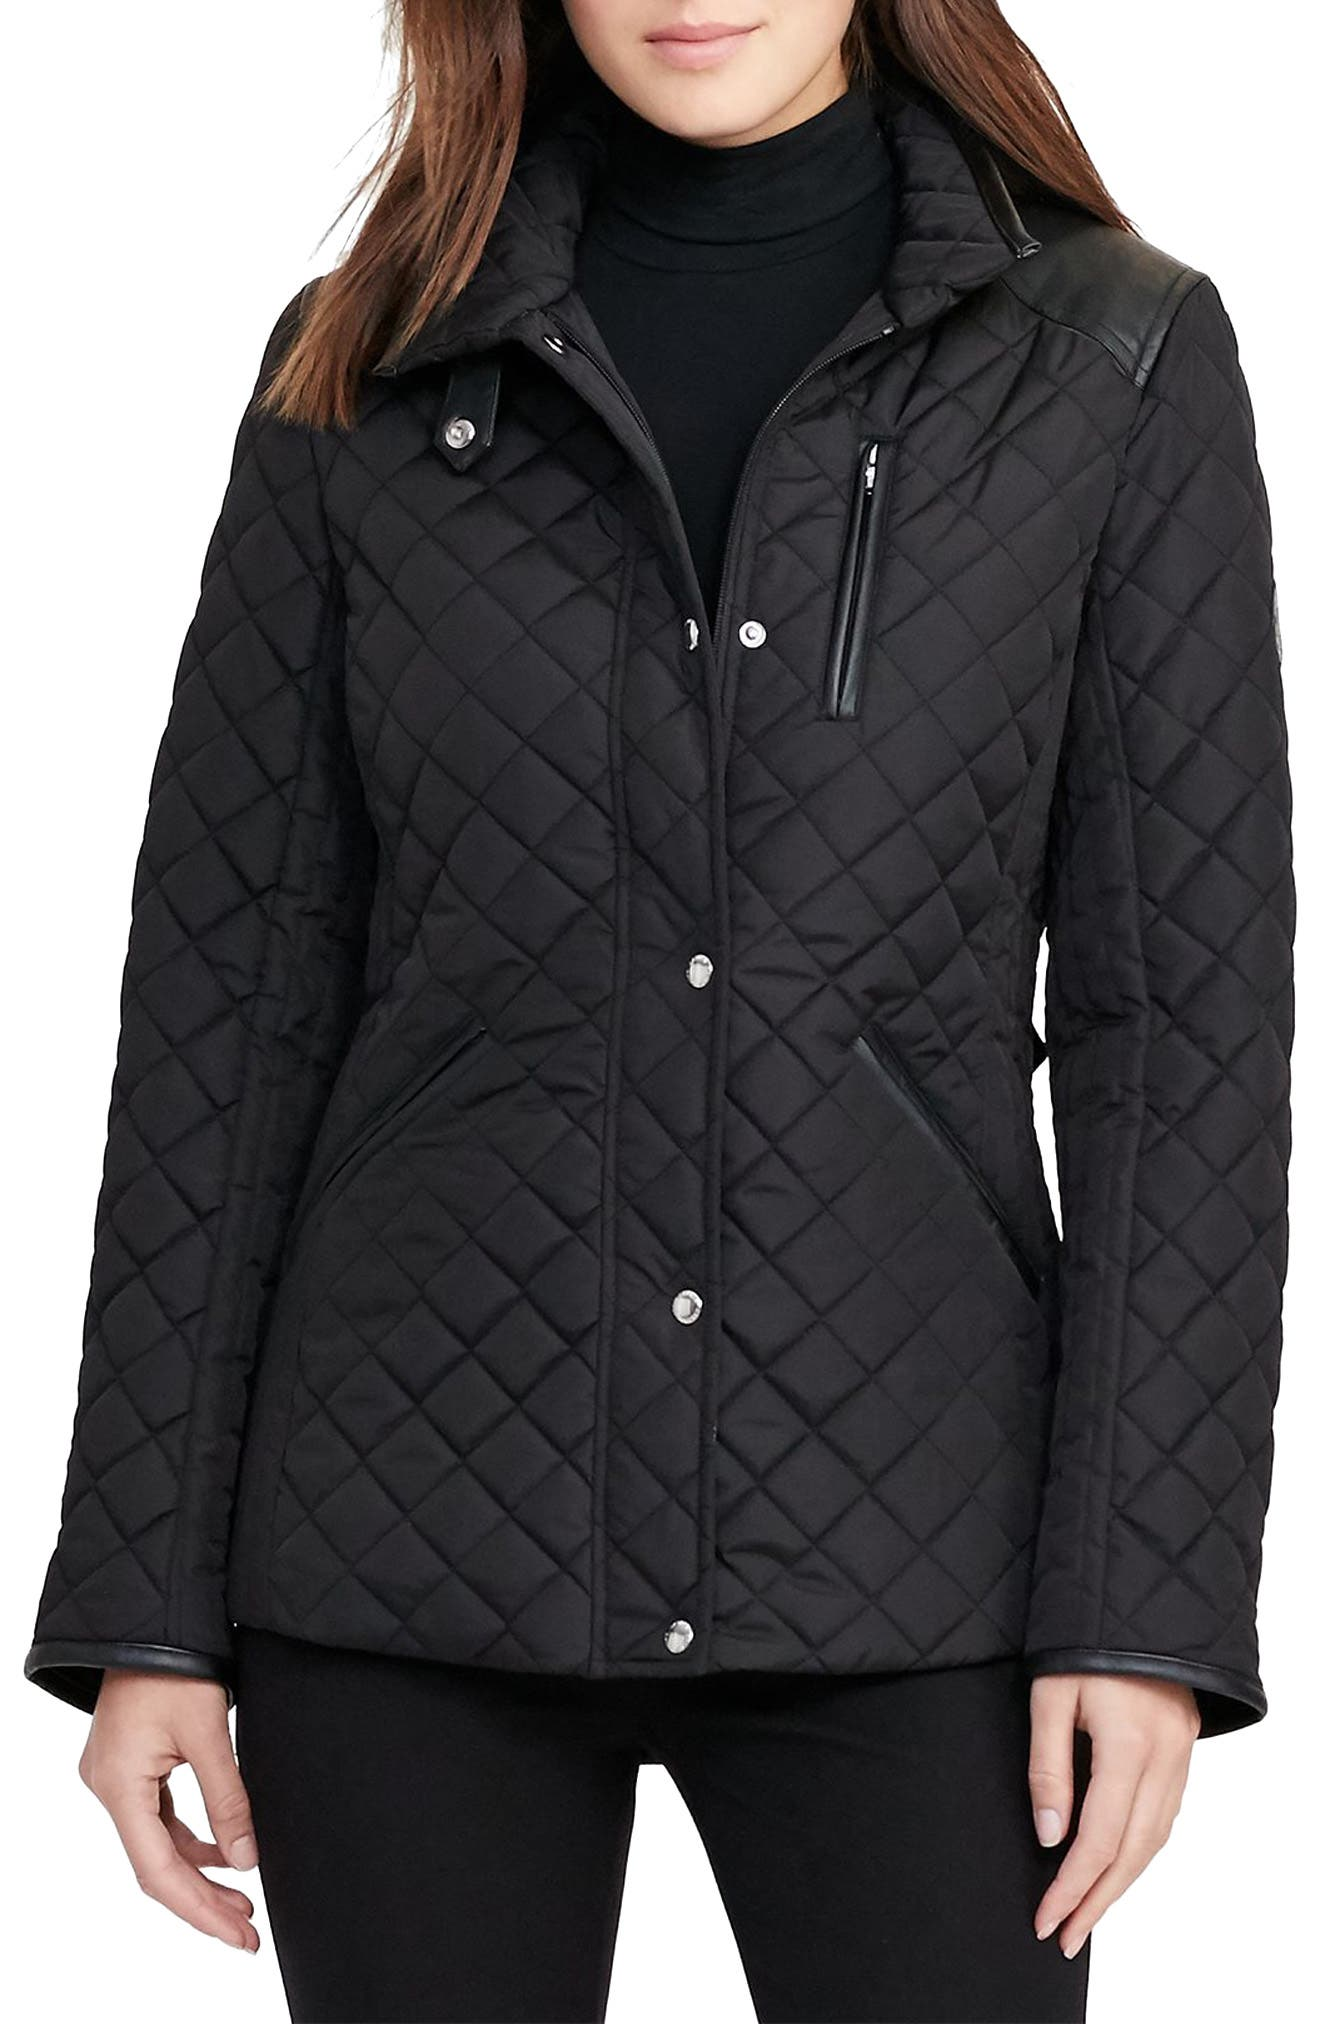 Alternate Image 1 Selected - Lauren Ralph Lauren Faux Leather Trim Quilted Jacket